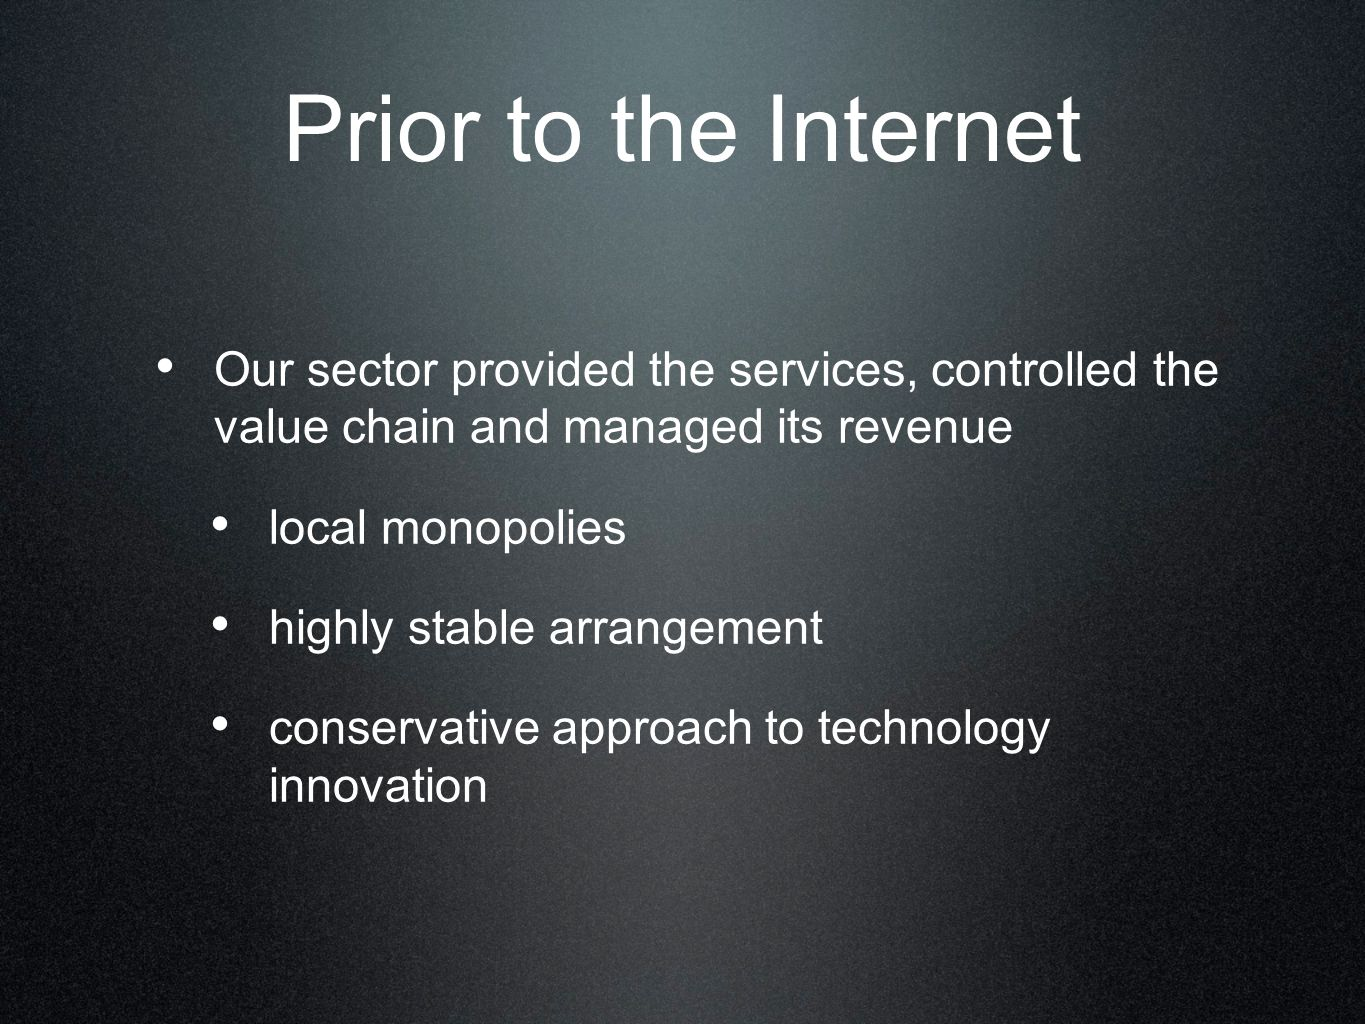 Prior to the Internet Our sector provided the services, controlled the value chain and managed its revenue local monopolies highly stable arrangement conservative approach to technology innovation